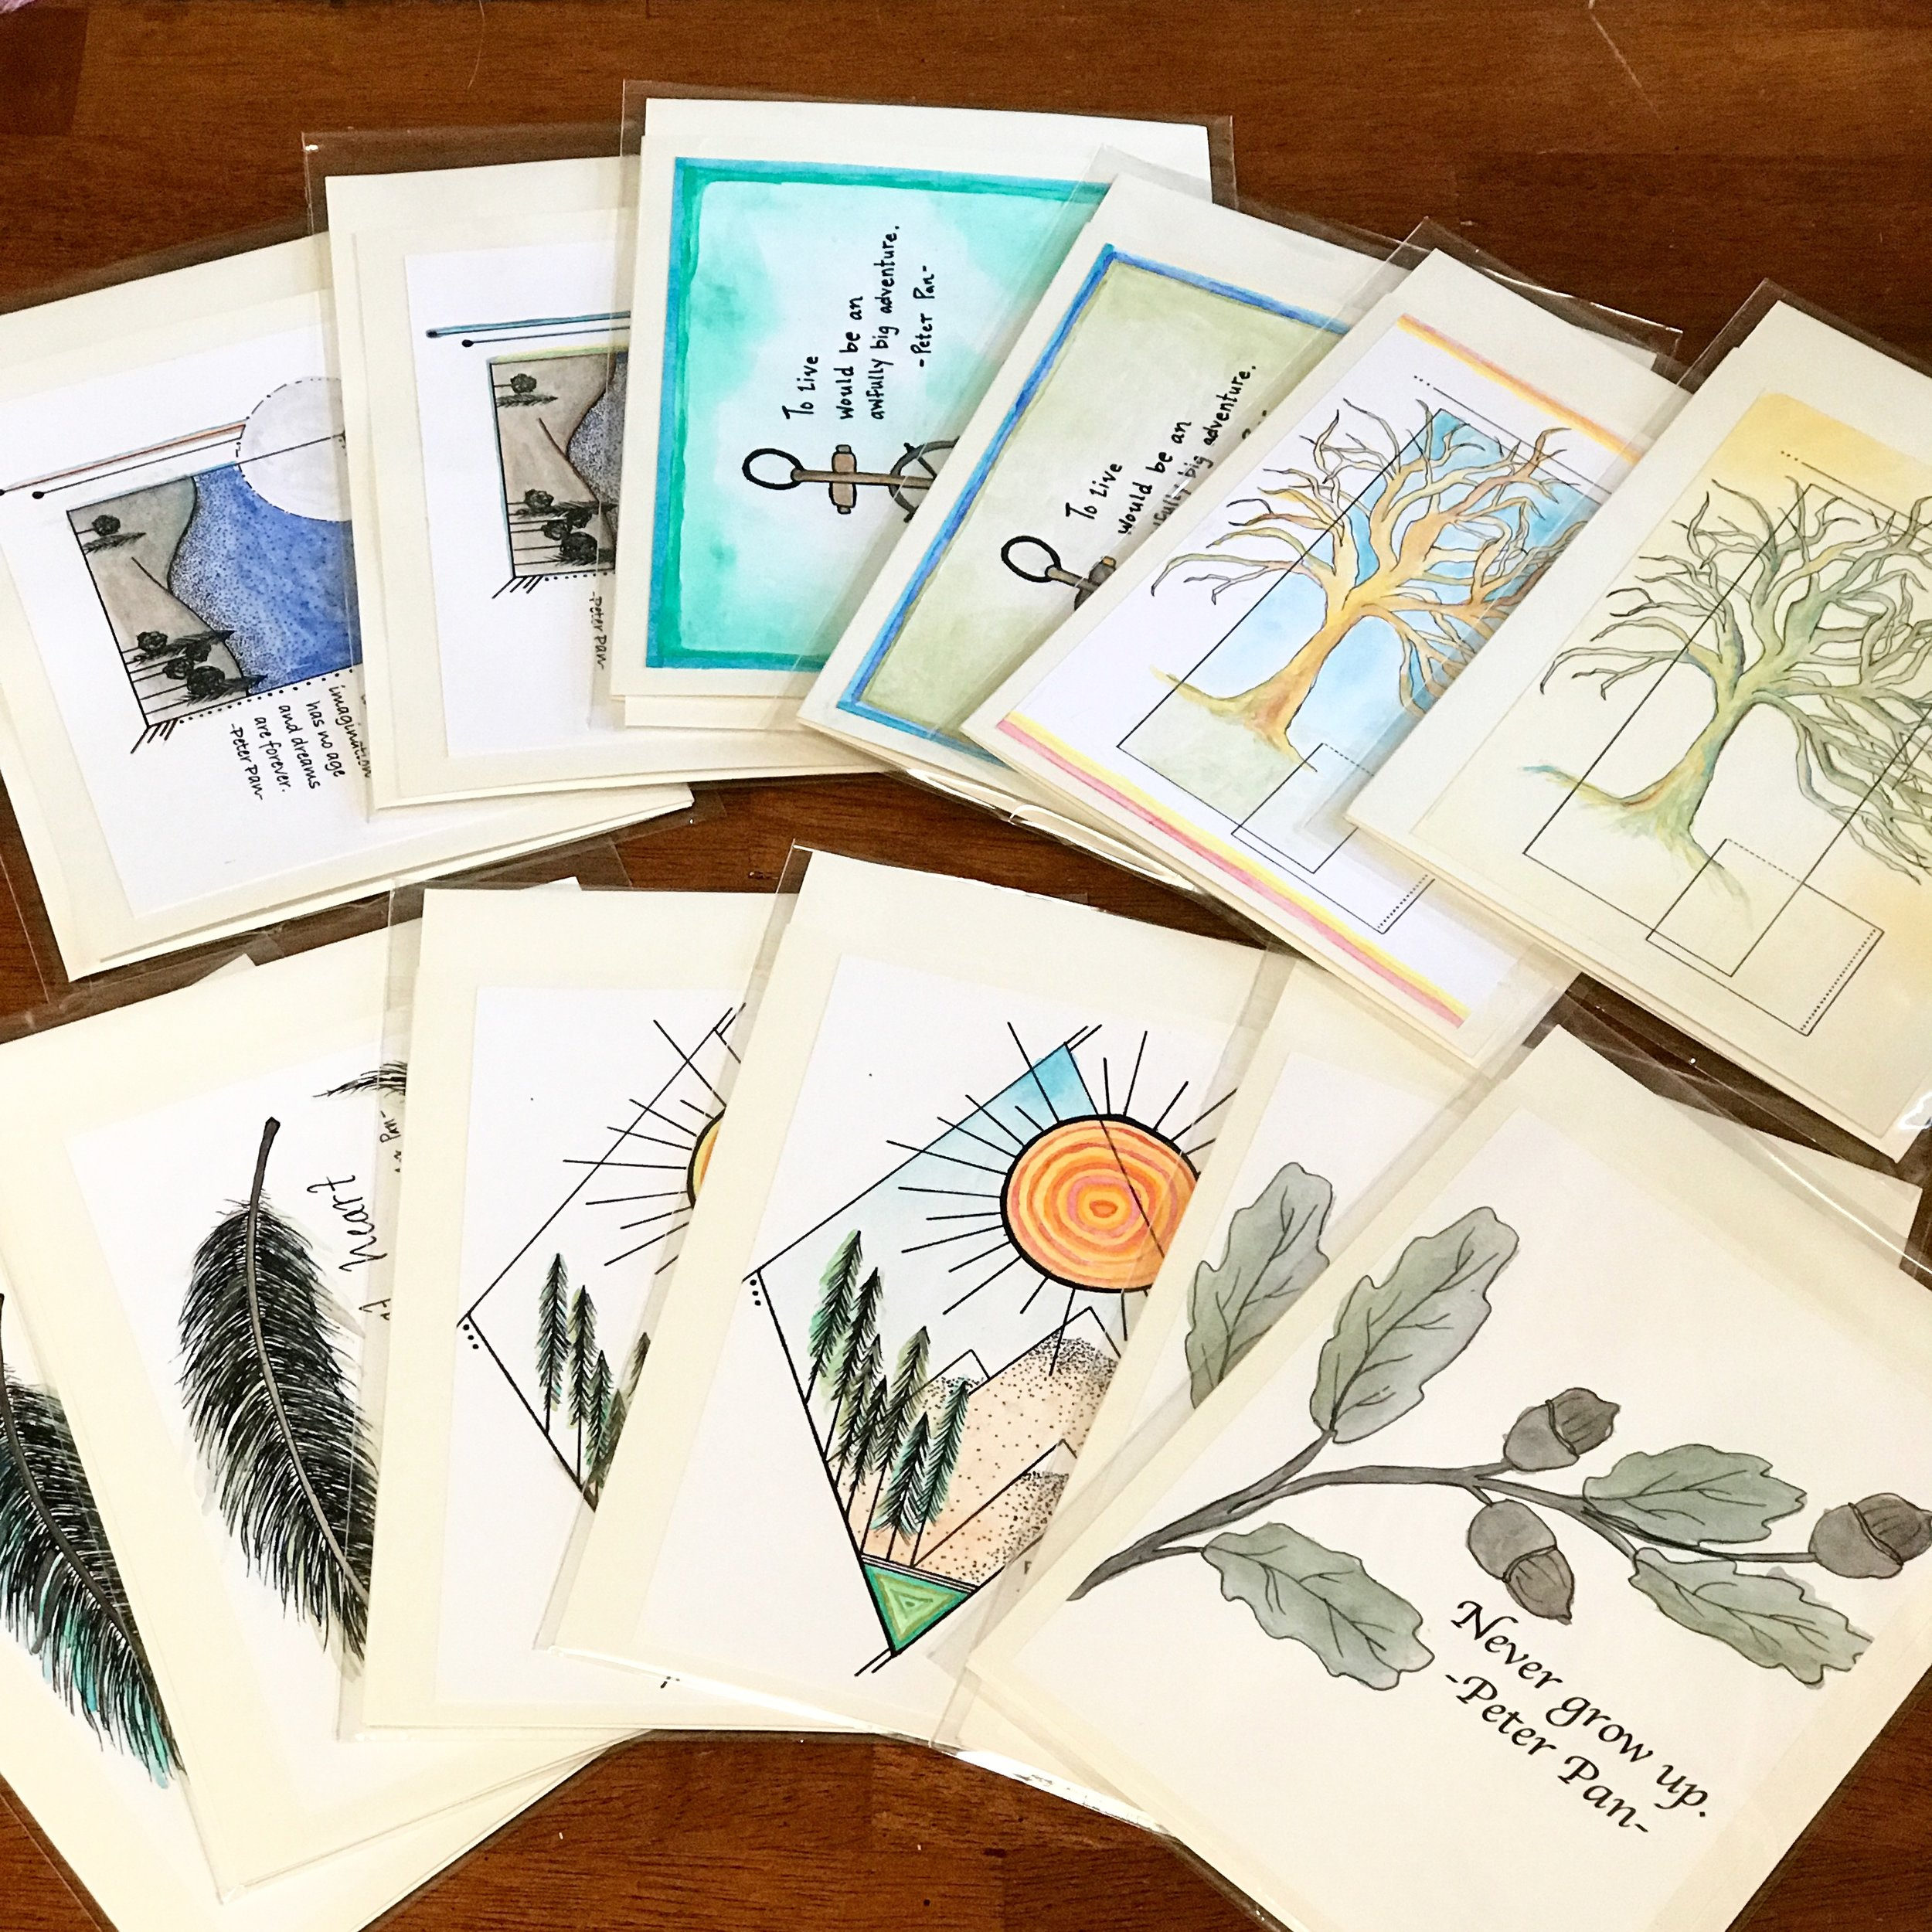 Custom greeting cards inspired by quotes from Peter Pan, created by Balsam & Olive. Each design was hand painted and customized to meet the client's vision.